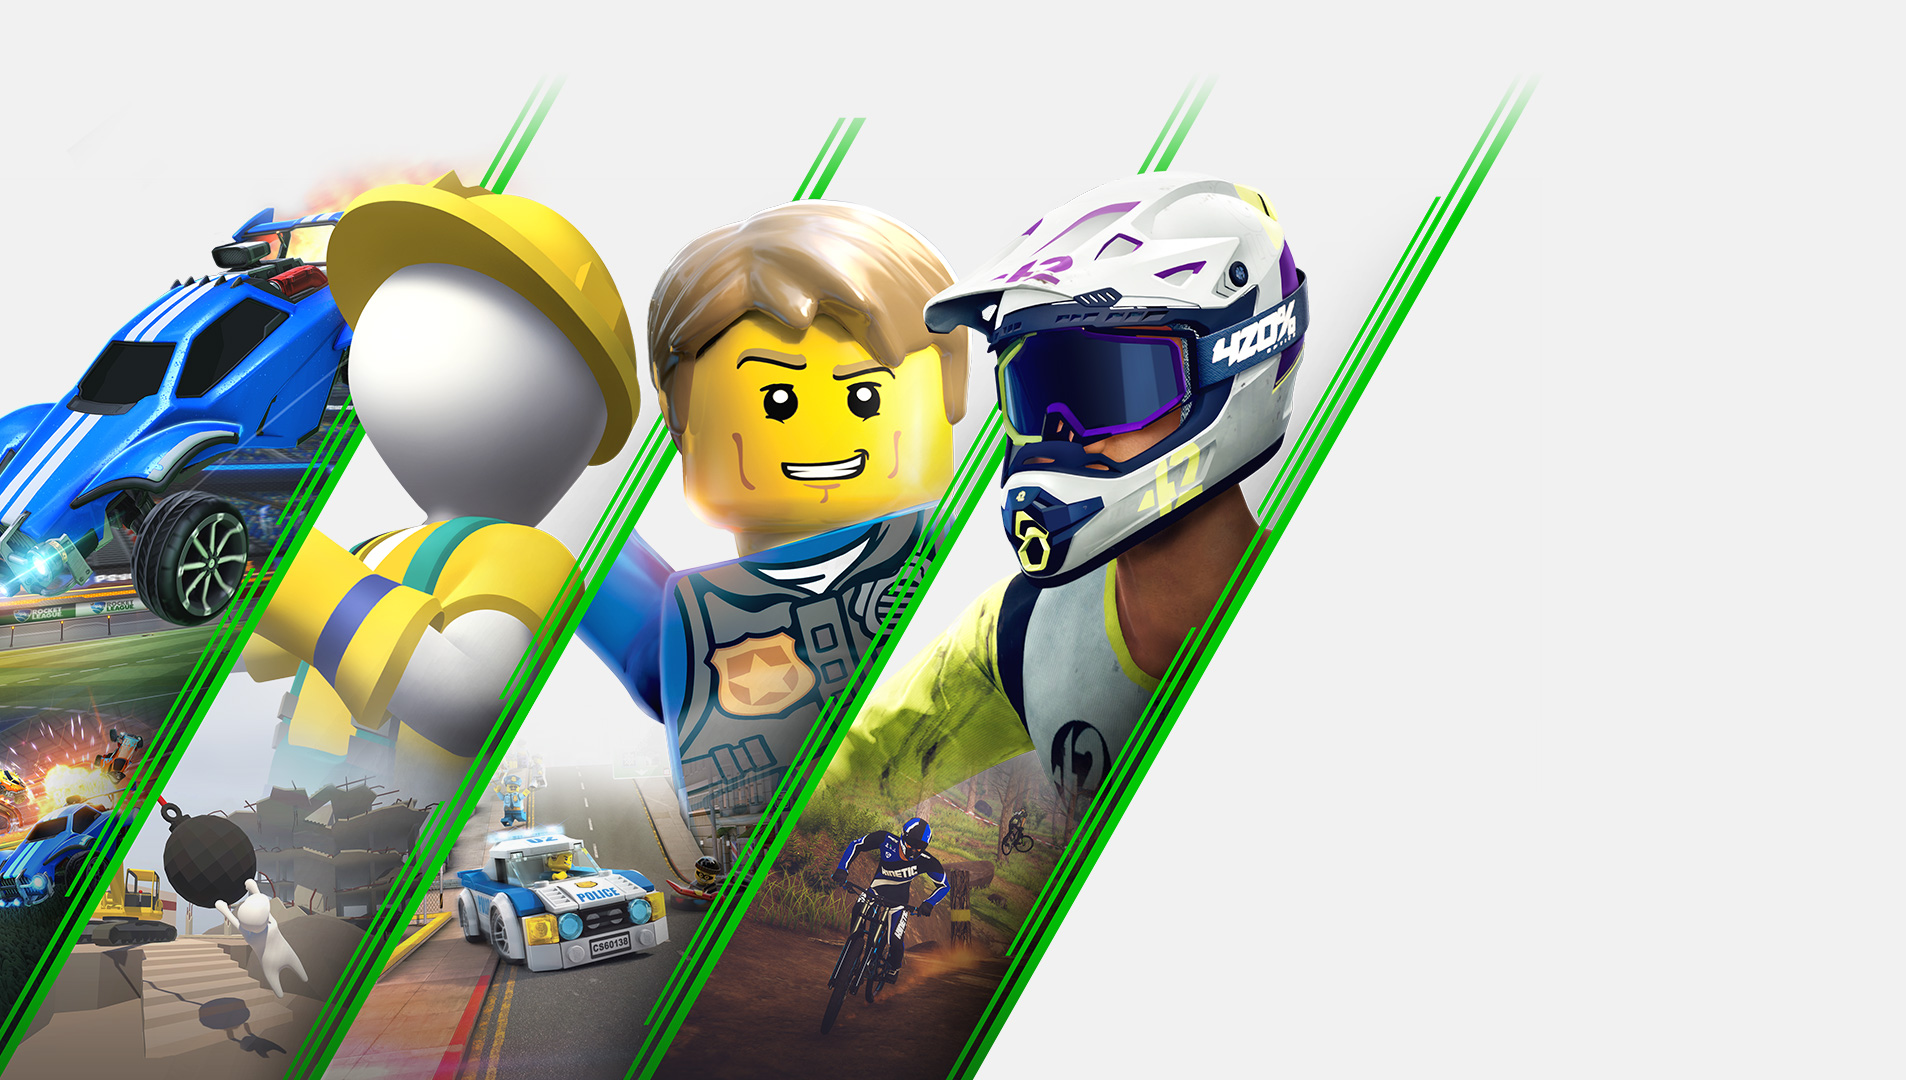 Collage of characters from Rocket League, Human Fall Flat, Lego City Undercover, Descenders and Guacamelee 2